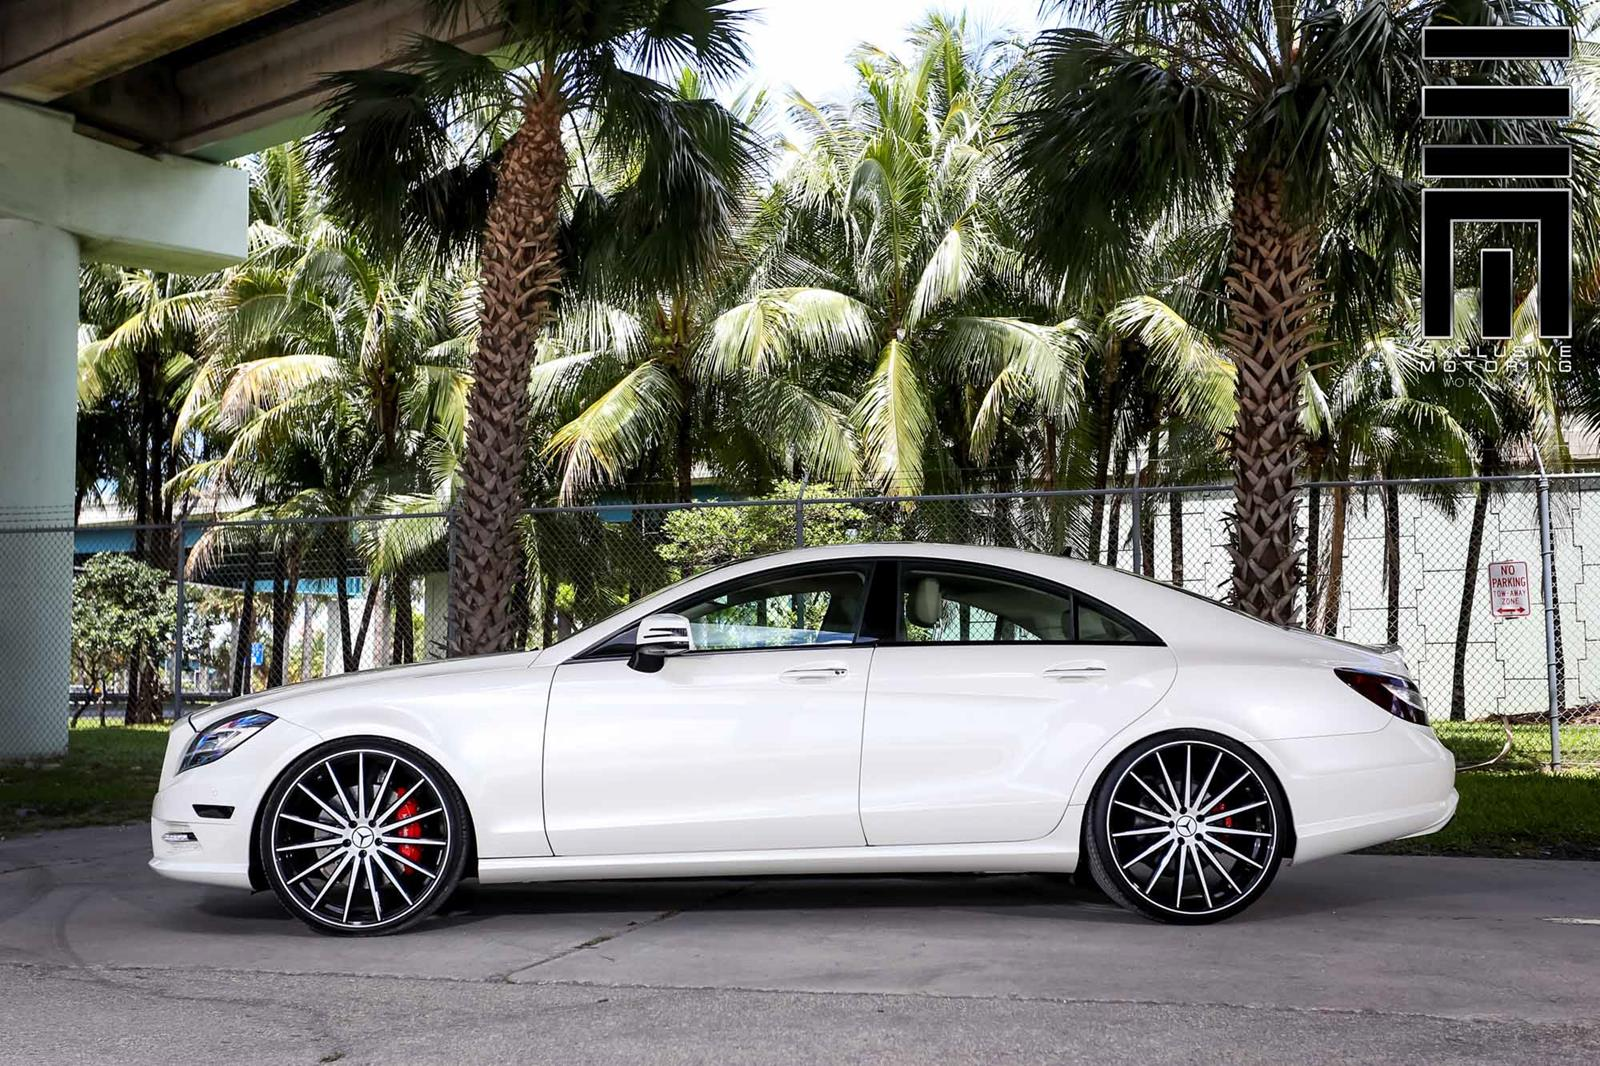 Http www benztuning com 2015 08 mercedes cls w218 white html